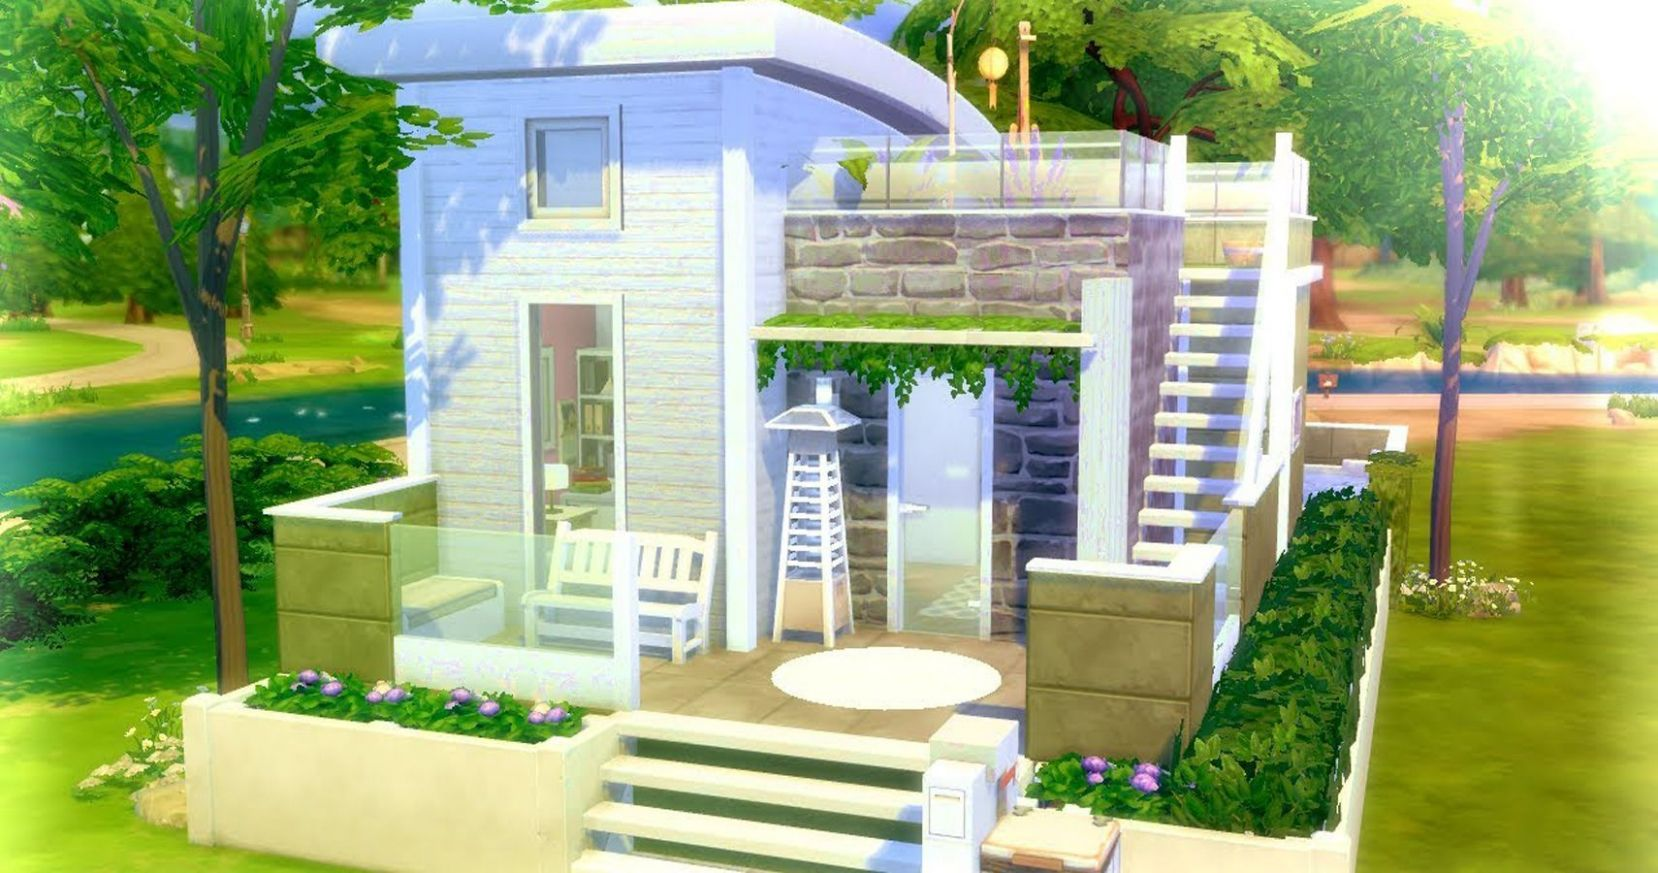 Sims 11: 11 Completely Functional Tiny Homes (That Use No Custom ..